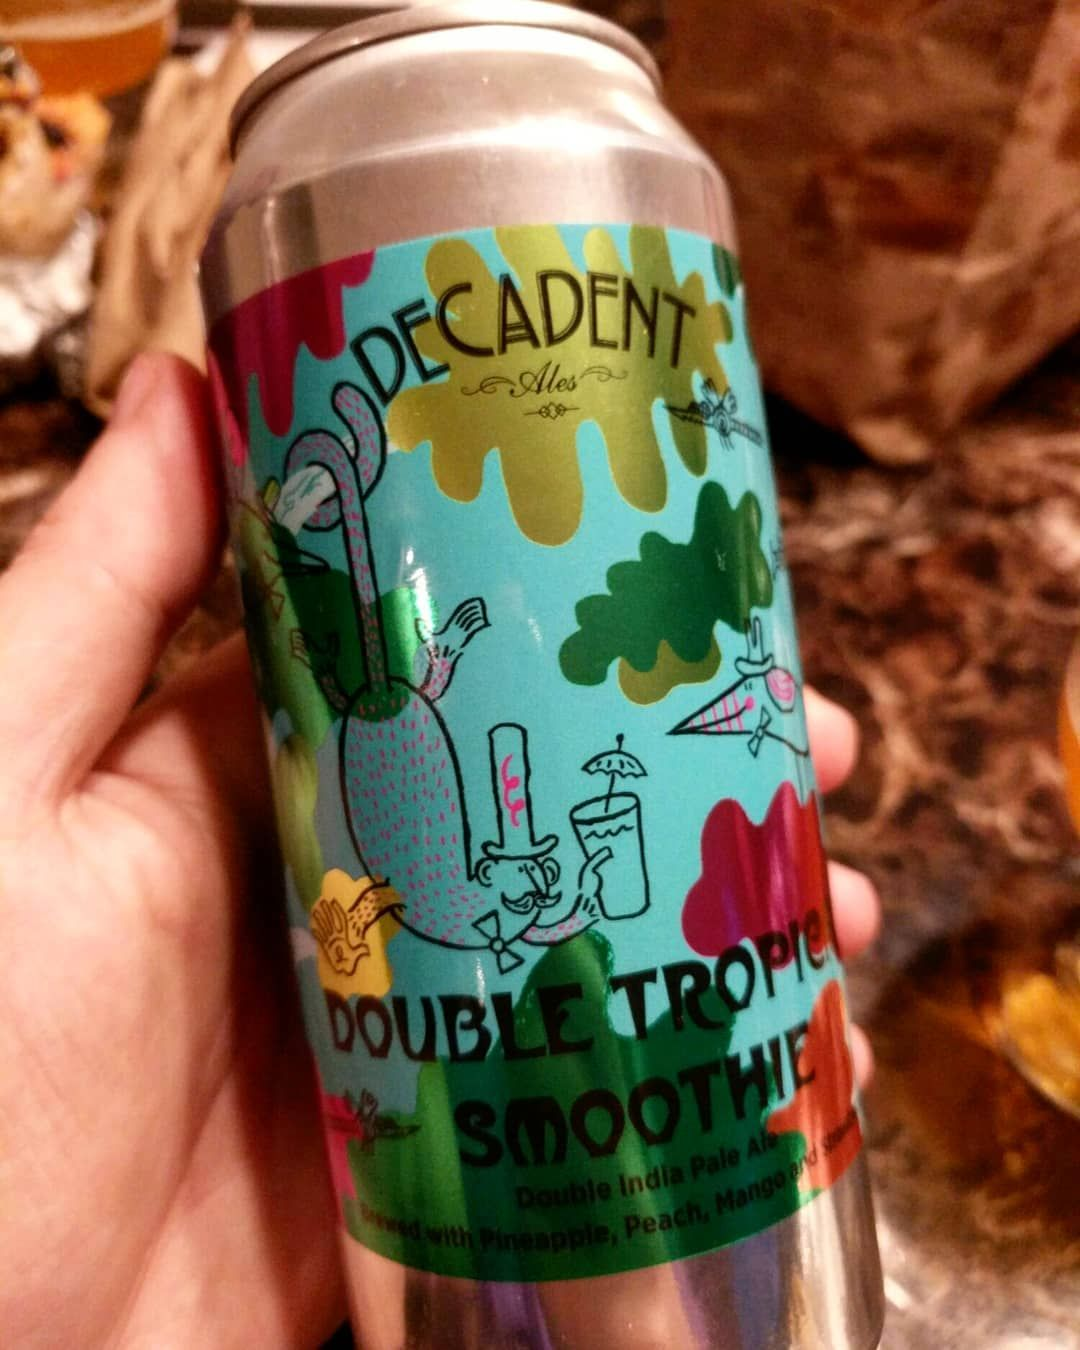 Double Tropical Smoothie by Decadent Ales